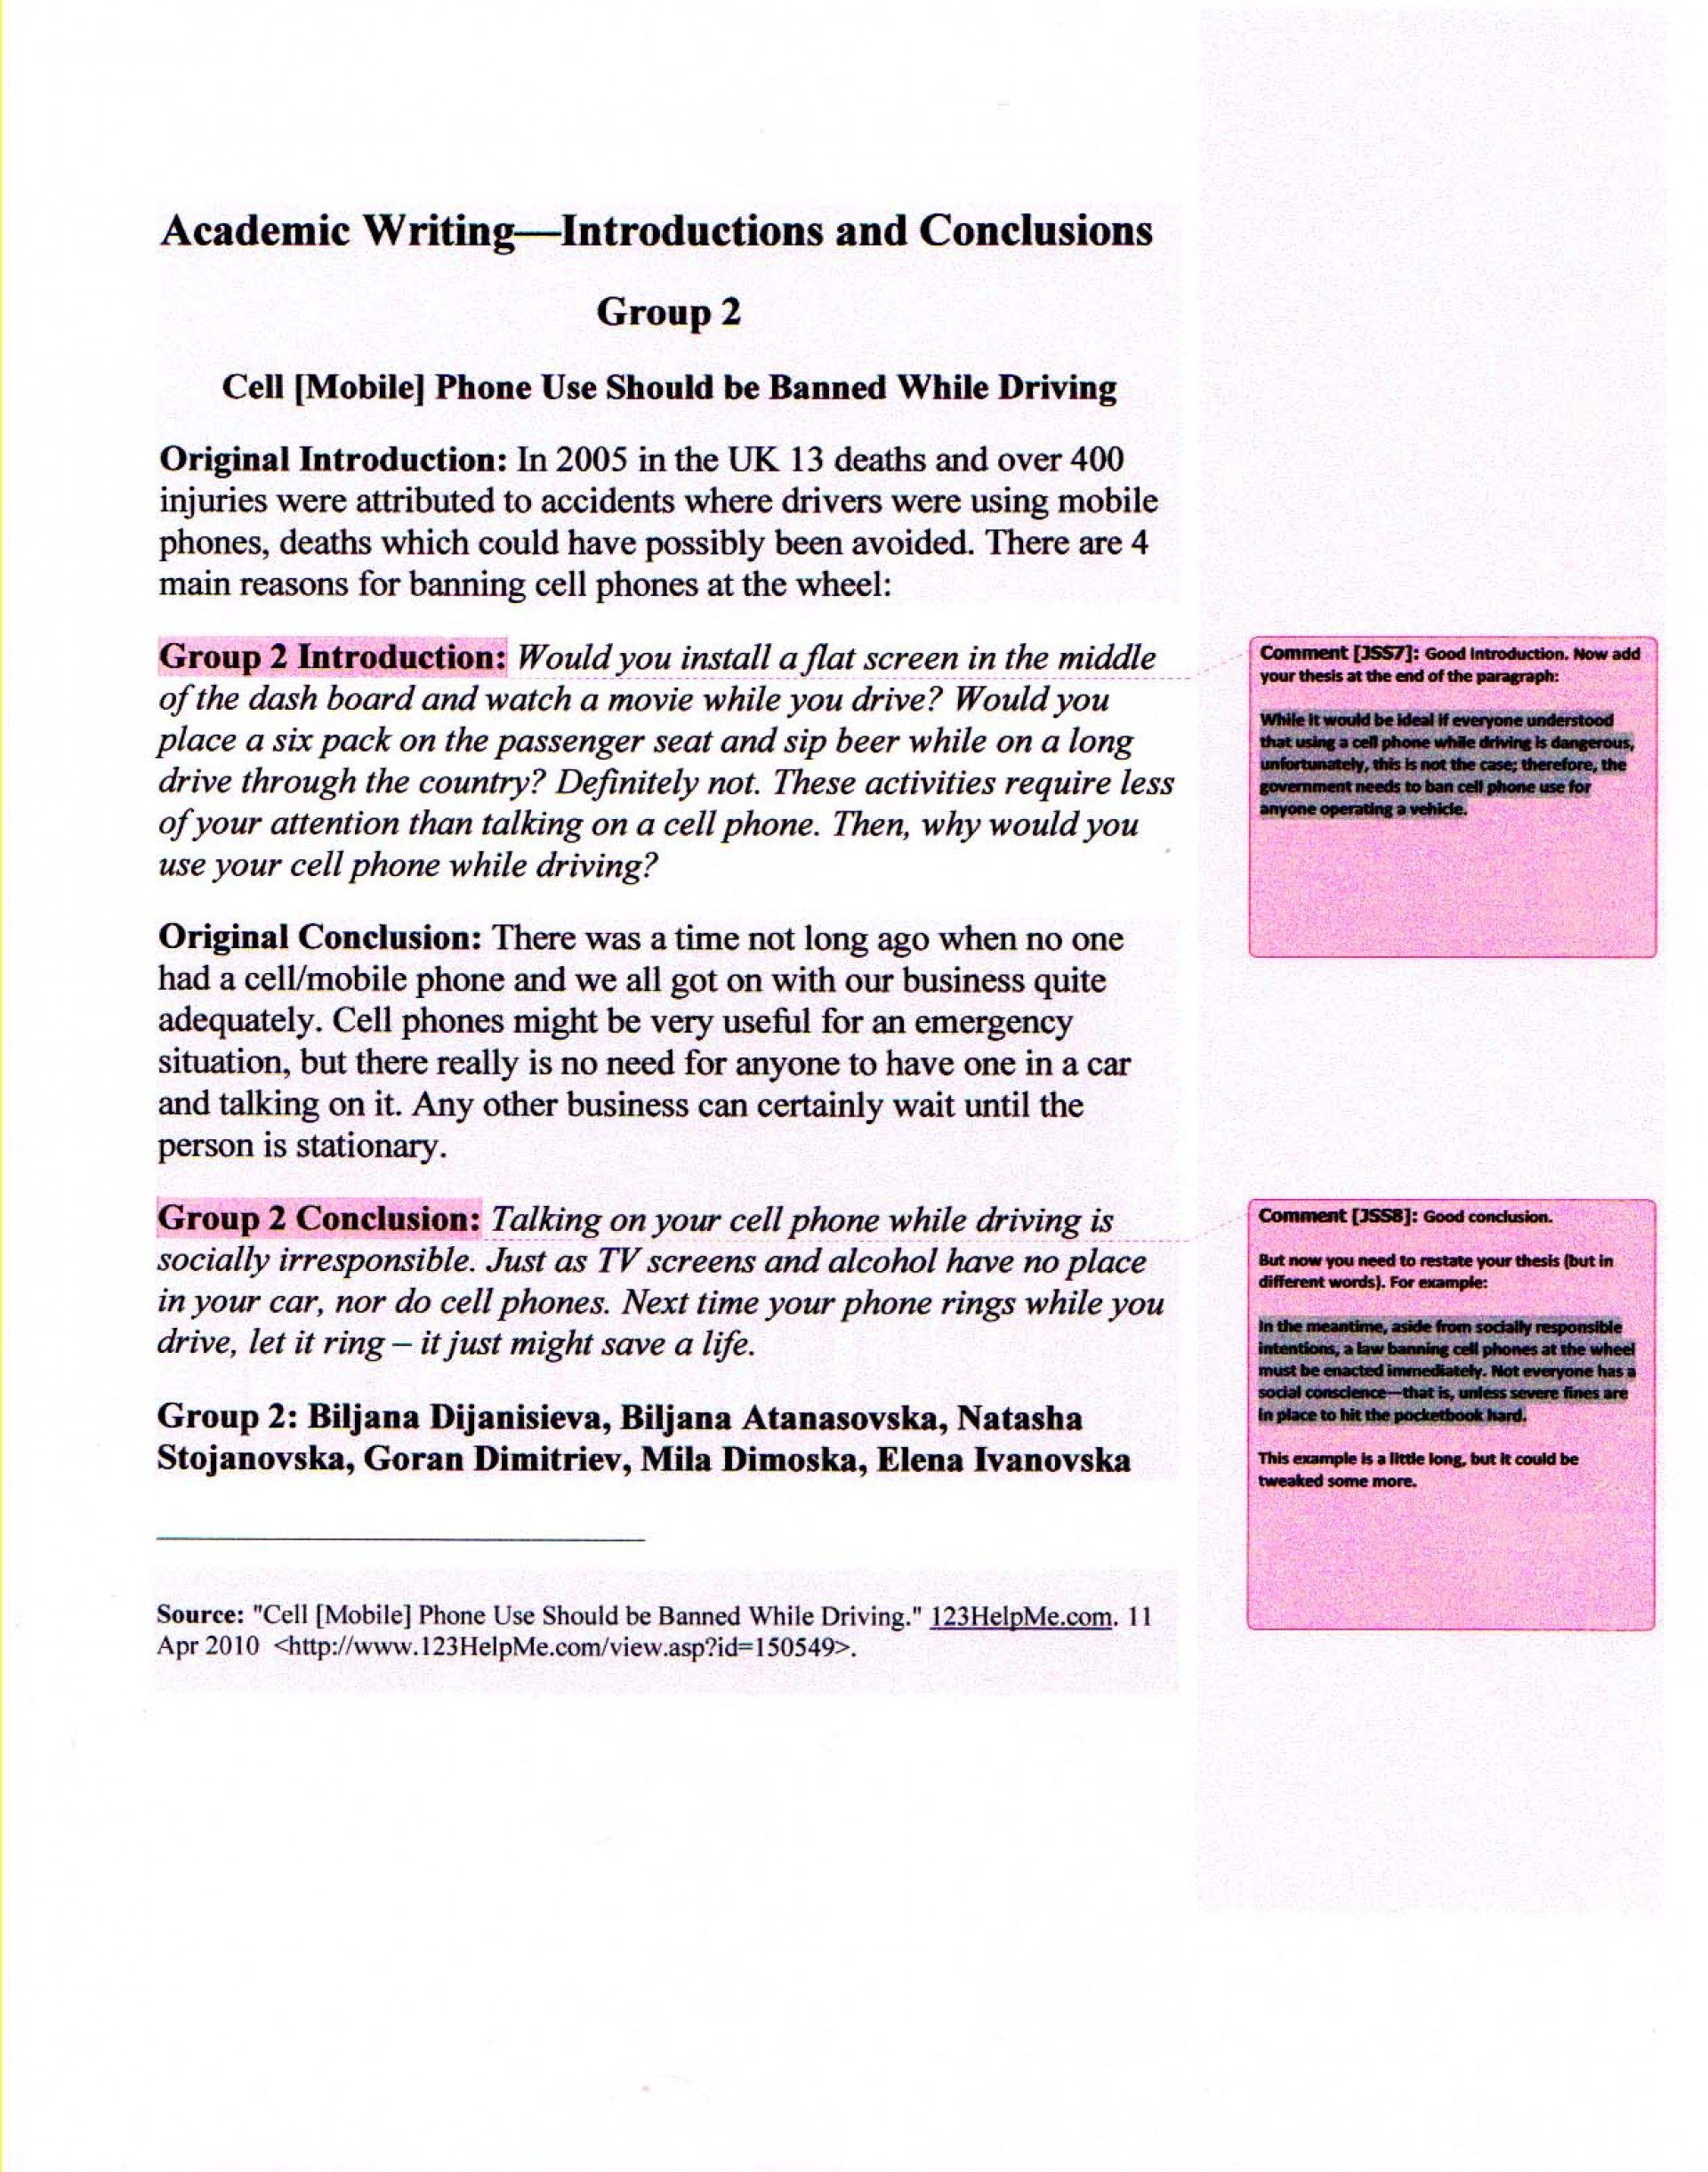 013 Essay Example Academicwriting Blogintrosconclusions Group2 Conclusion To Outstanding Persuasive Good A The Strongest 1920